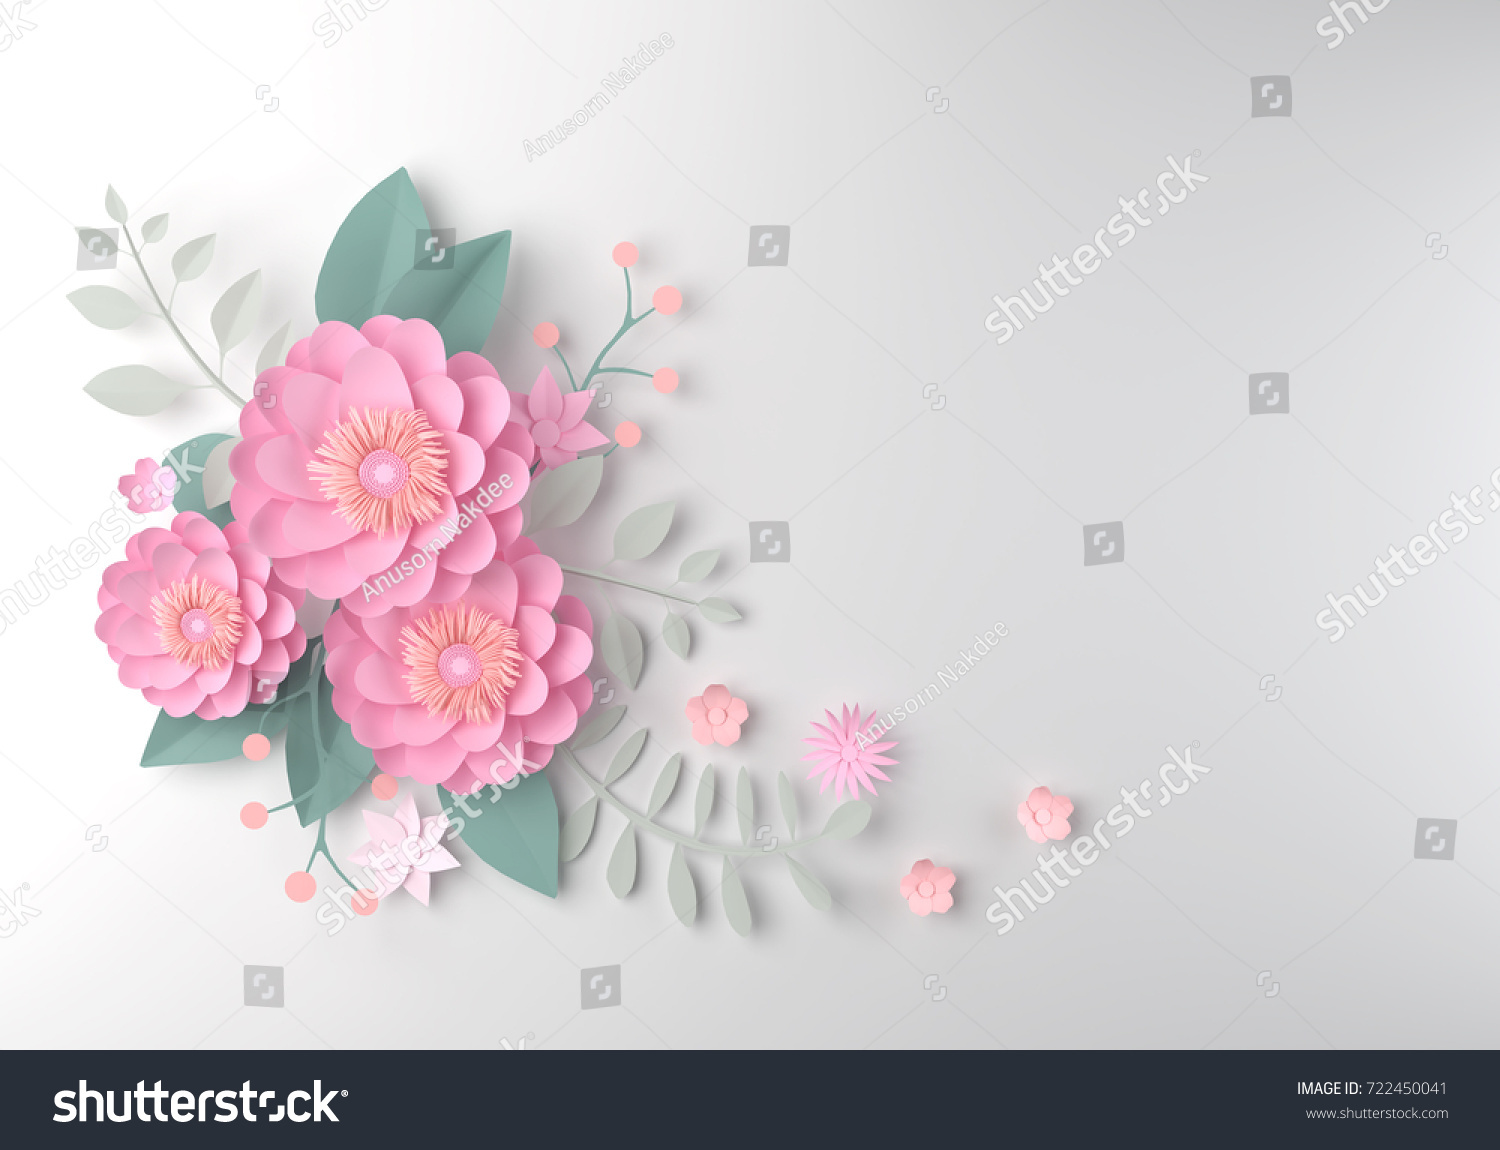 color paper flower wallpaper background abstract stock illustration